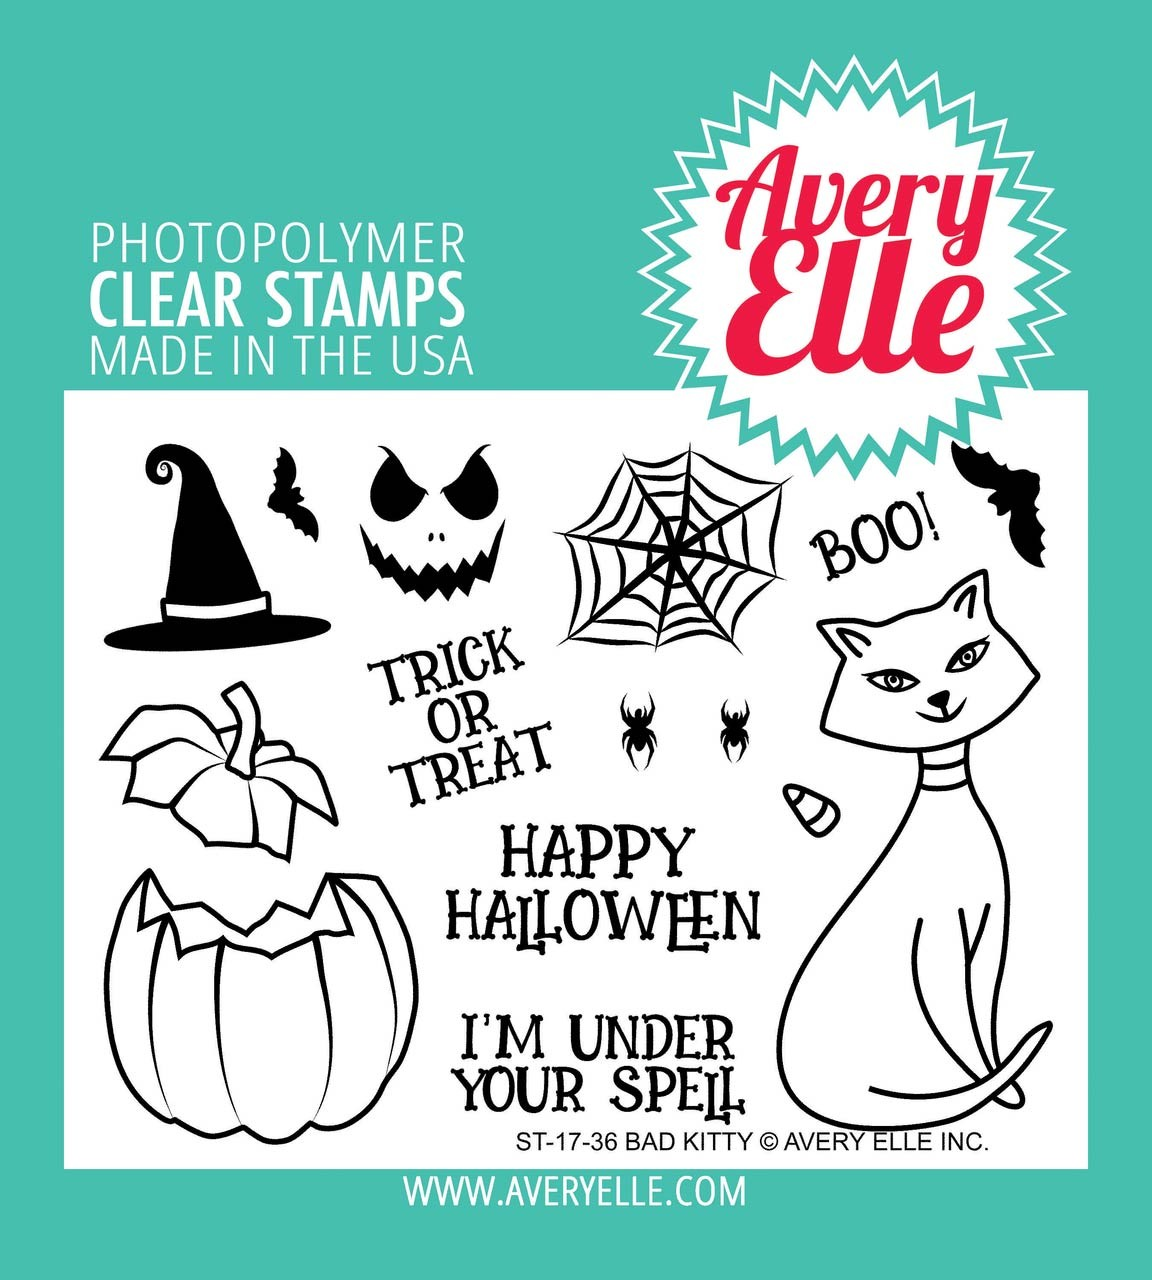 Avery Elle Bad Kitty Clear Stamp Set